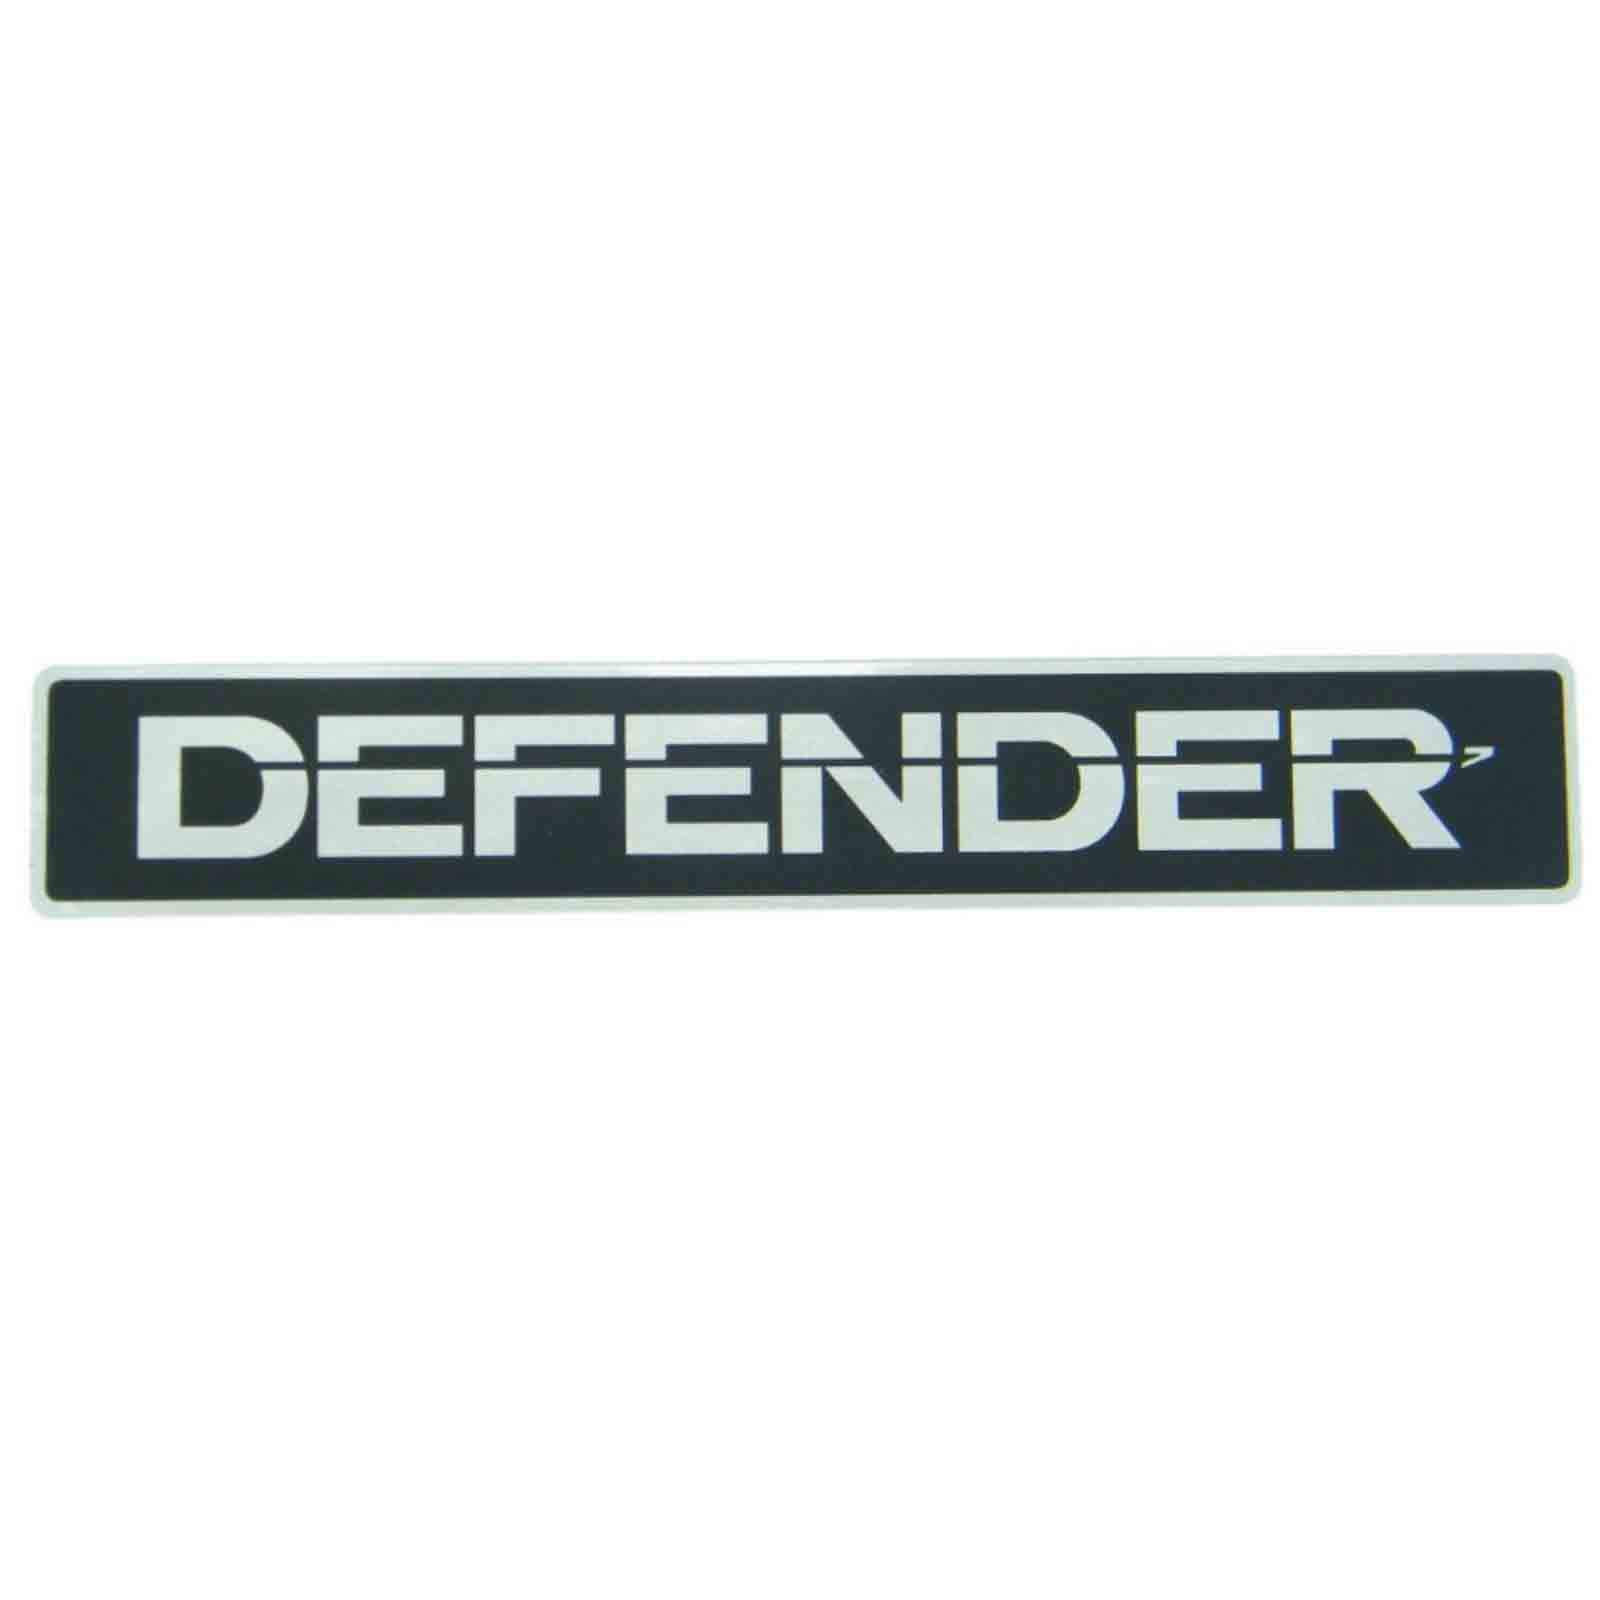 Land rover defender 90 110 tdi 300 200 td4 td5 adesivo decalcomania logo frontal